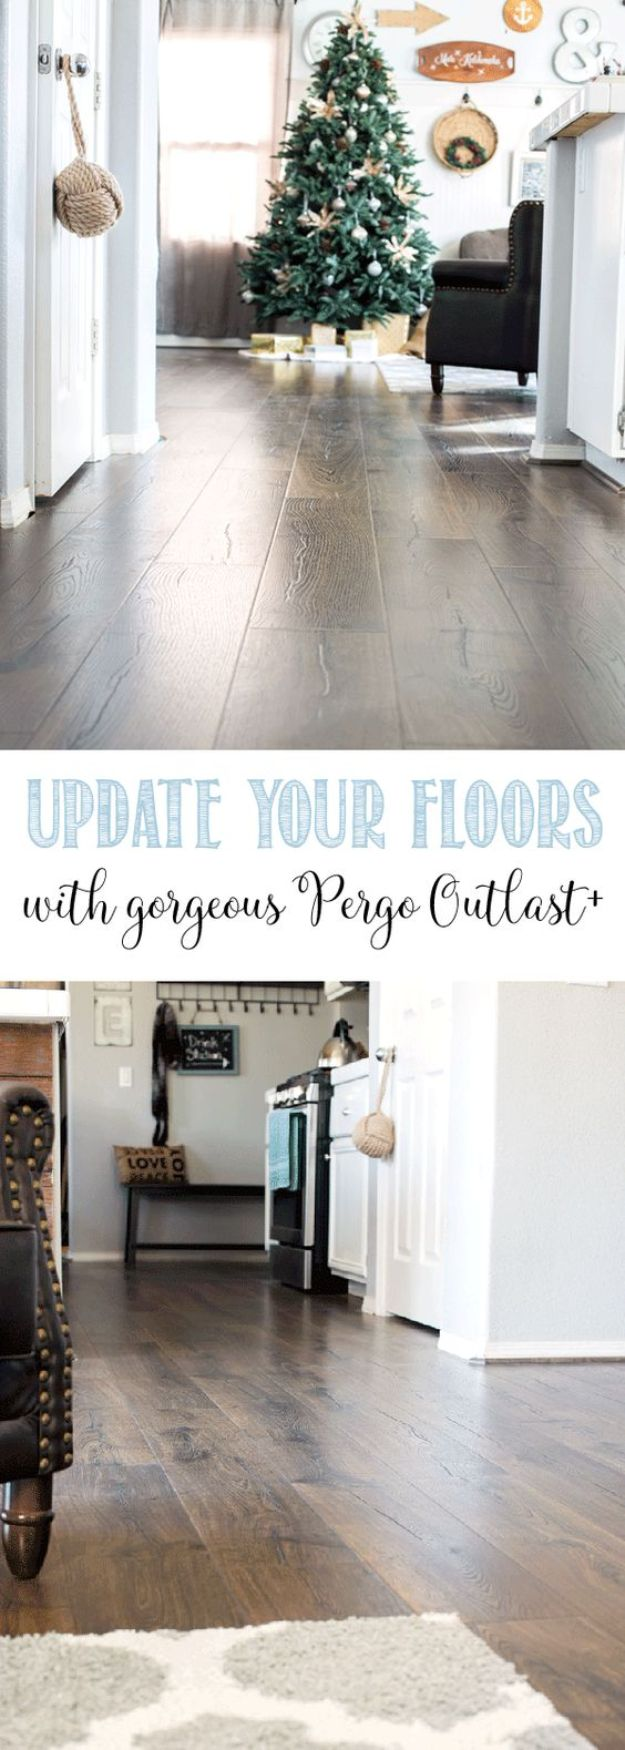 DIY Flooring Projects - Update Your Floors With Gorgeous Pergo Outlast - Cheap Floor Ideas for Those On A Budget - Inexpensive Ways To Refinish Floors With Concrete, Laminate, Plywood, Peel and Stick Tile, Wood, Vinyl - Easy Project Plans and Unique Creative Tutorials for Cool Do It Yourself Home Decor http://diyjoy.com/diy-flooring-projects